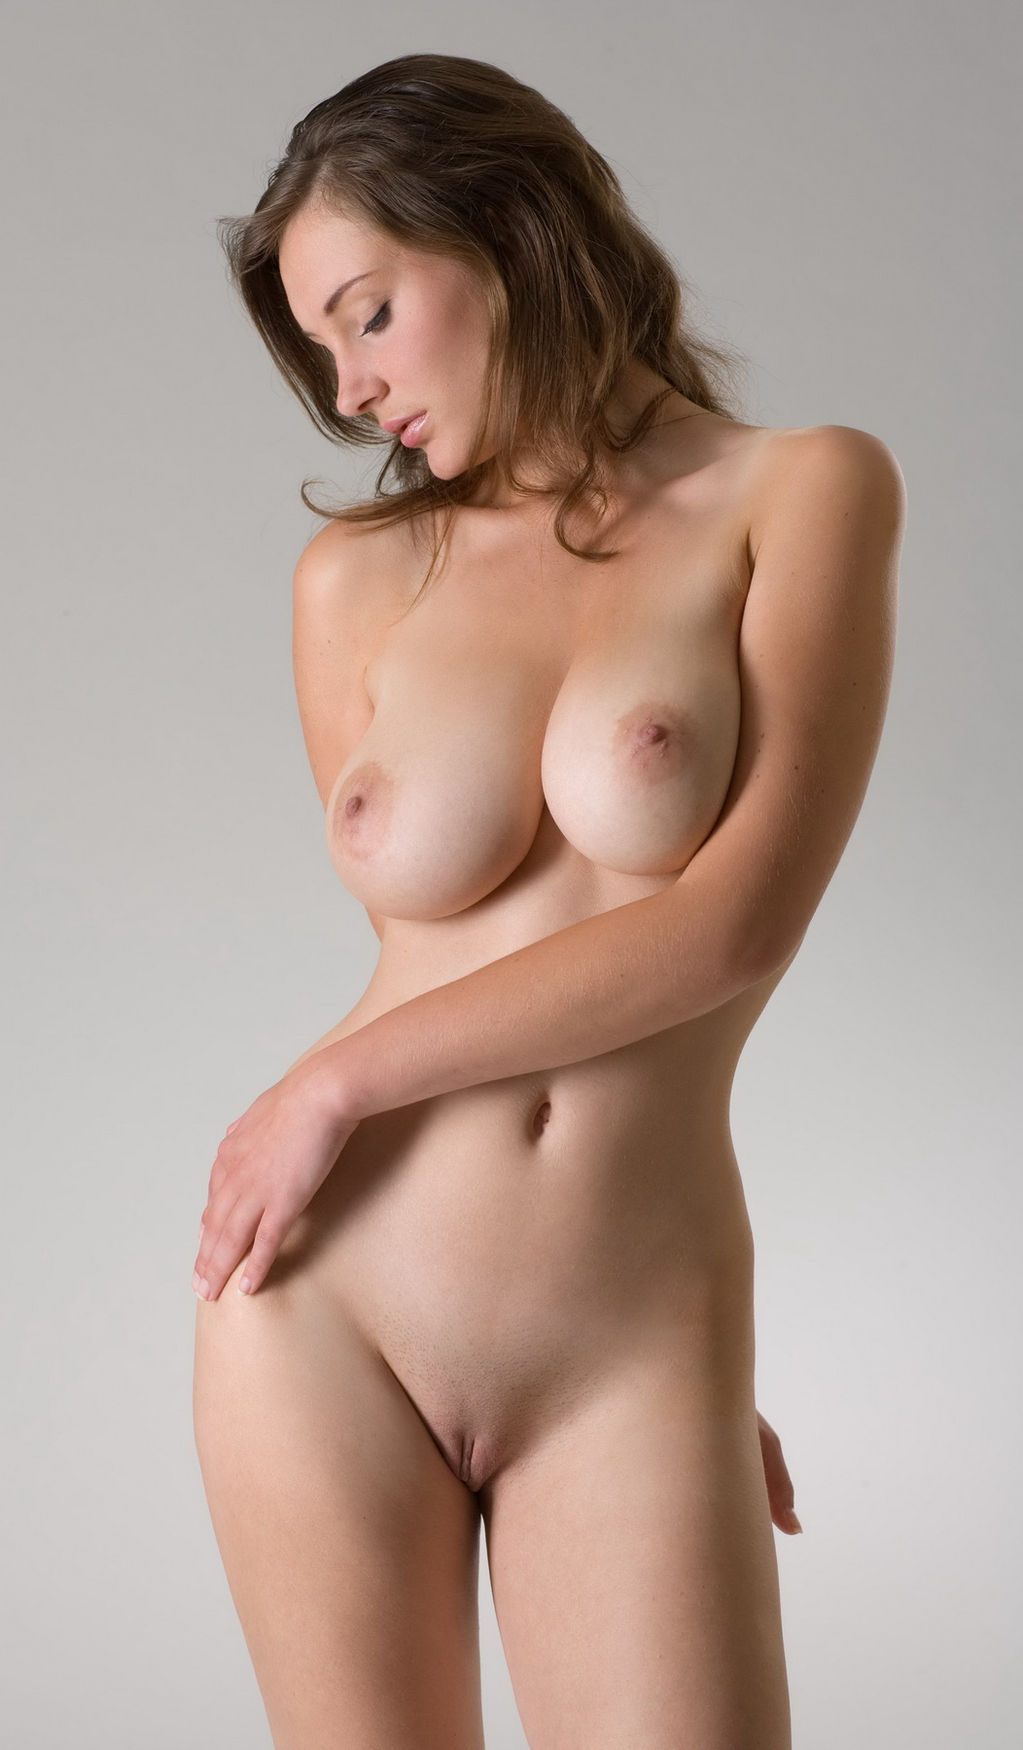 nude guys in front of girls